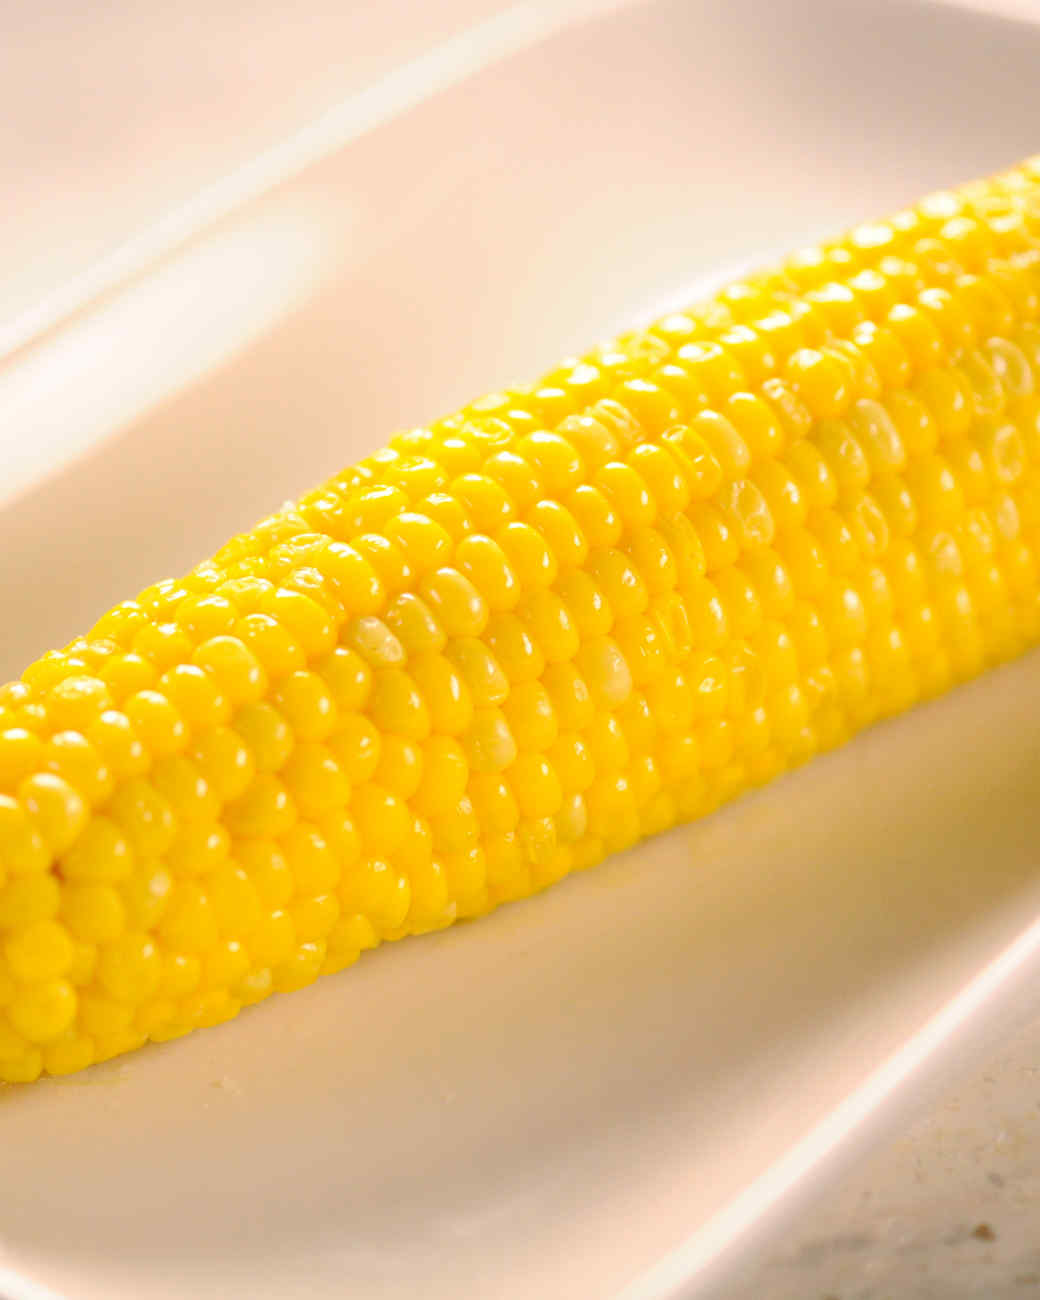 stovetop_corn_on_the_cob_1.jpg